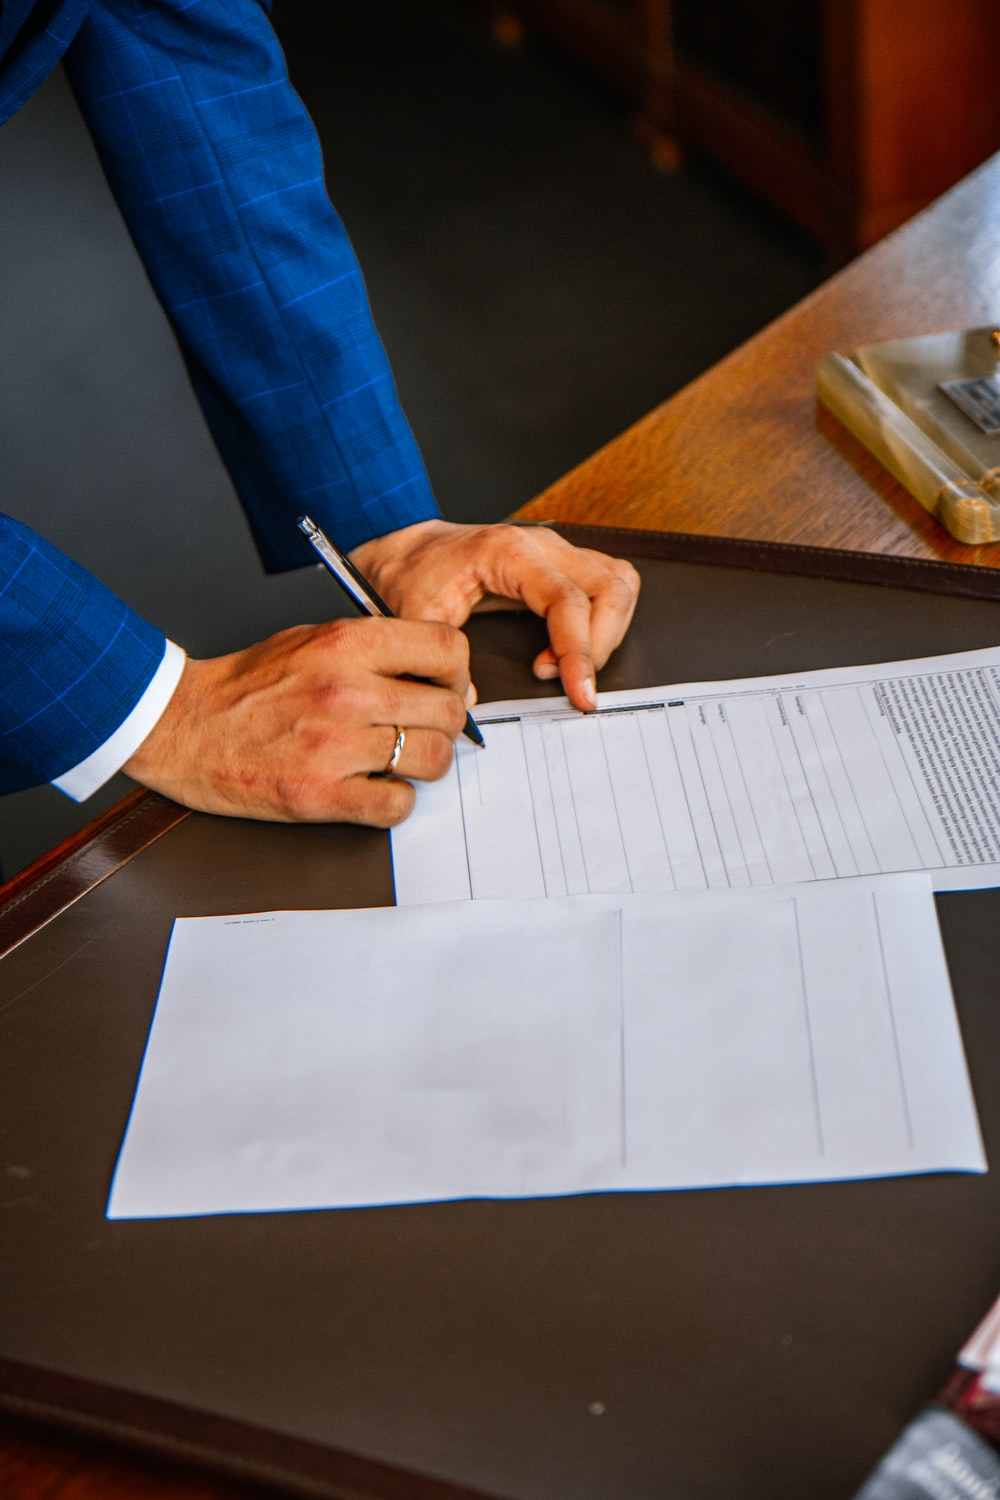 person writing on white form paper